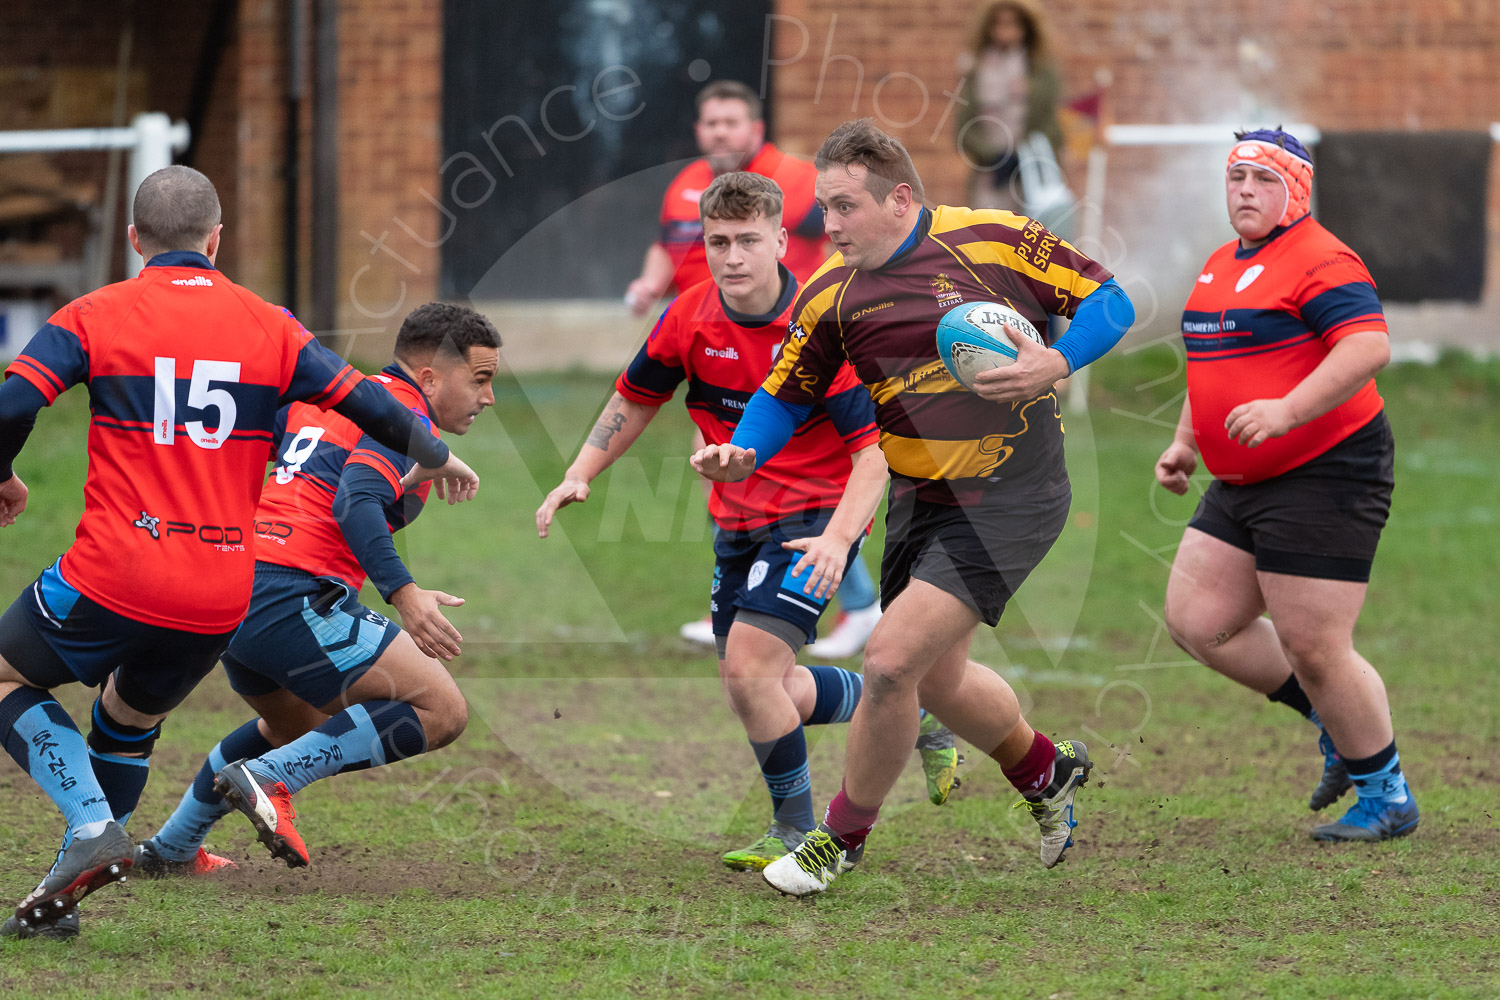 20181027 Amp Extras vs St Neots 2nd XV #2235